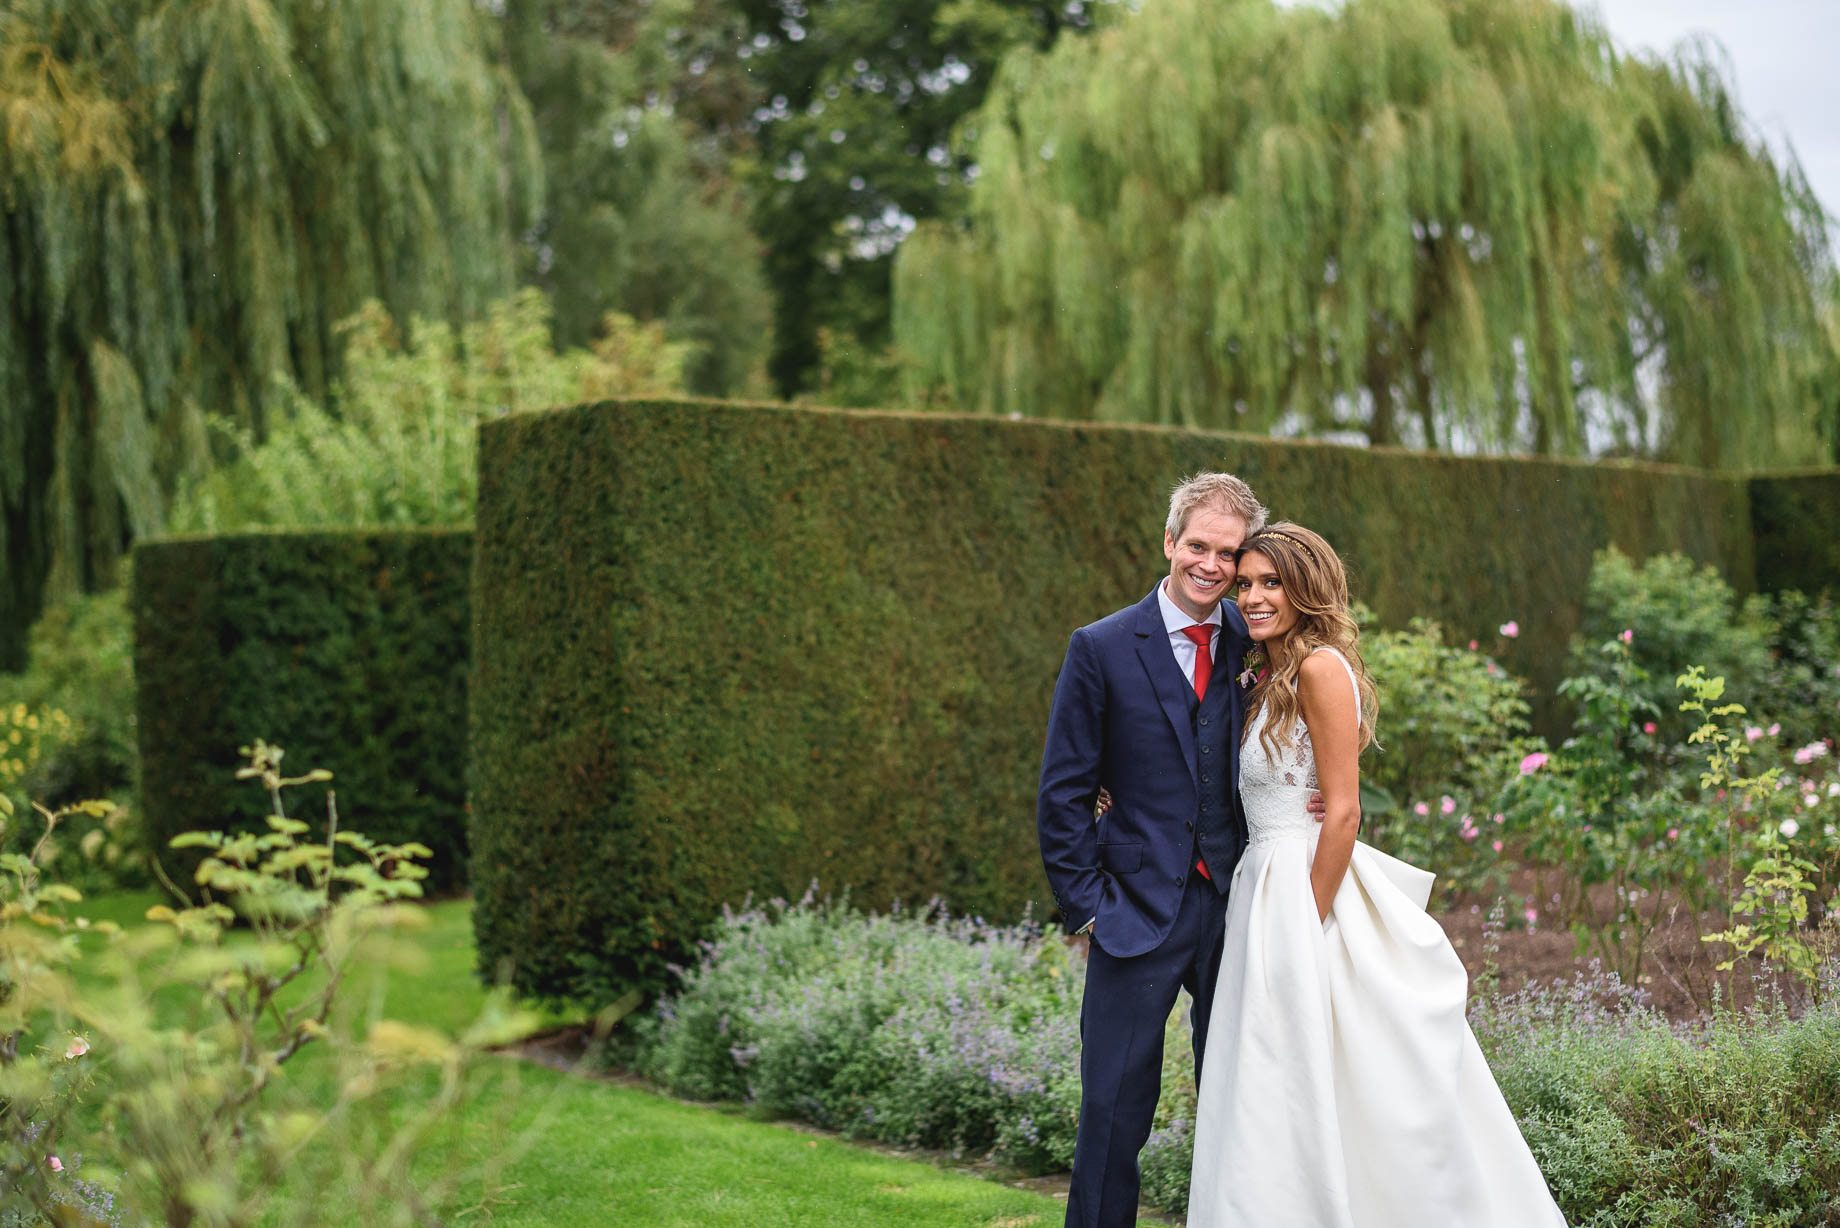 surrey-wedding-photography-guy-collier-photography-claire-and-tom-148-of-227